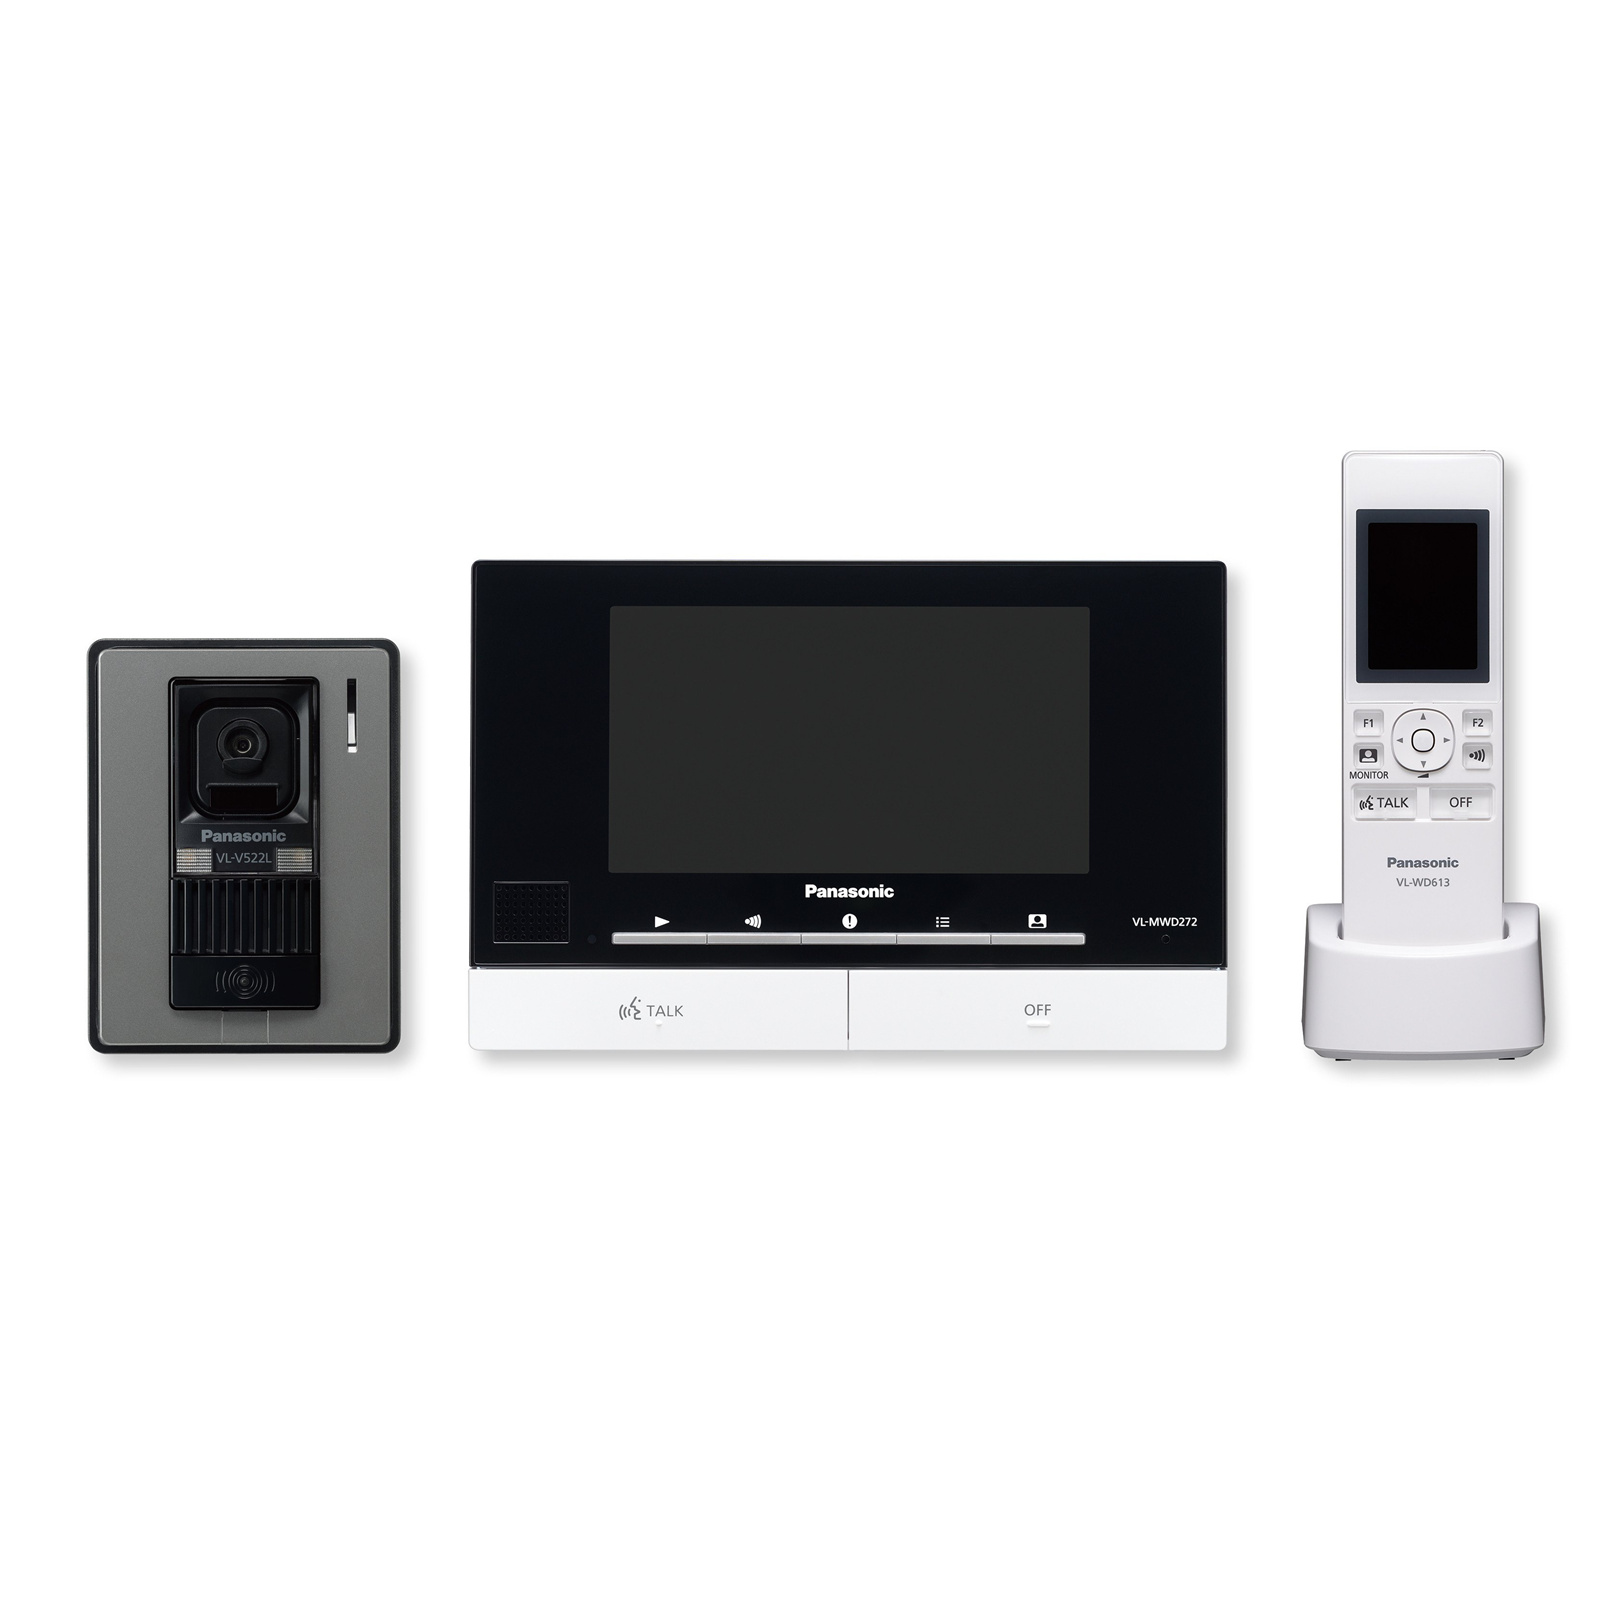 Buy The Panasonic Vl Swd272 Wireless Video Intercom System Dect